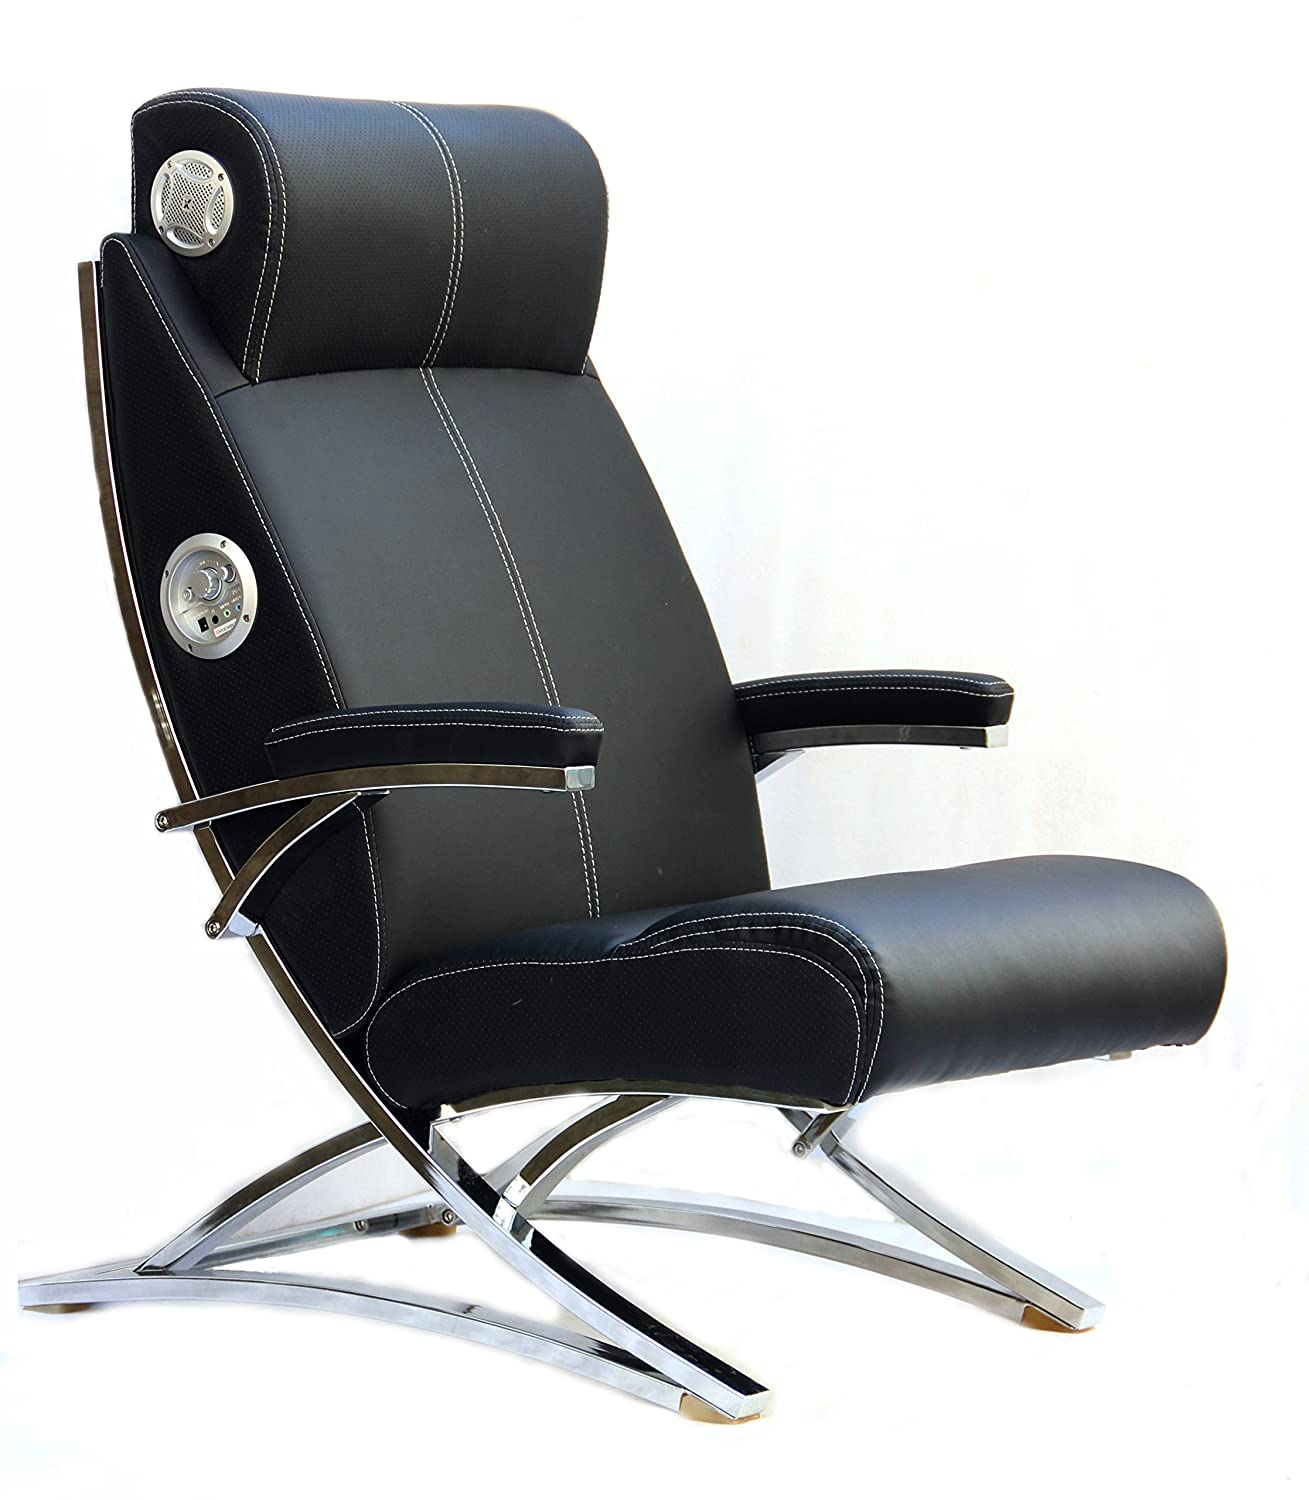 This Product Is One Of The Most Cost Effective Options In The Range Of  Gaming Chairs. There Are Two Built In Speakers With The Chair.